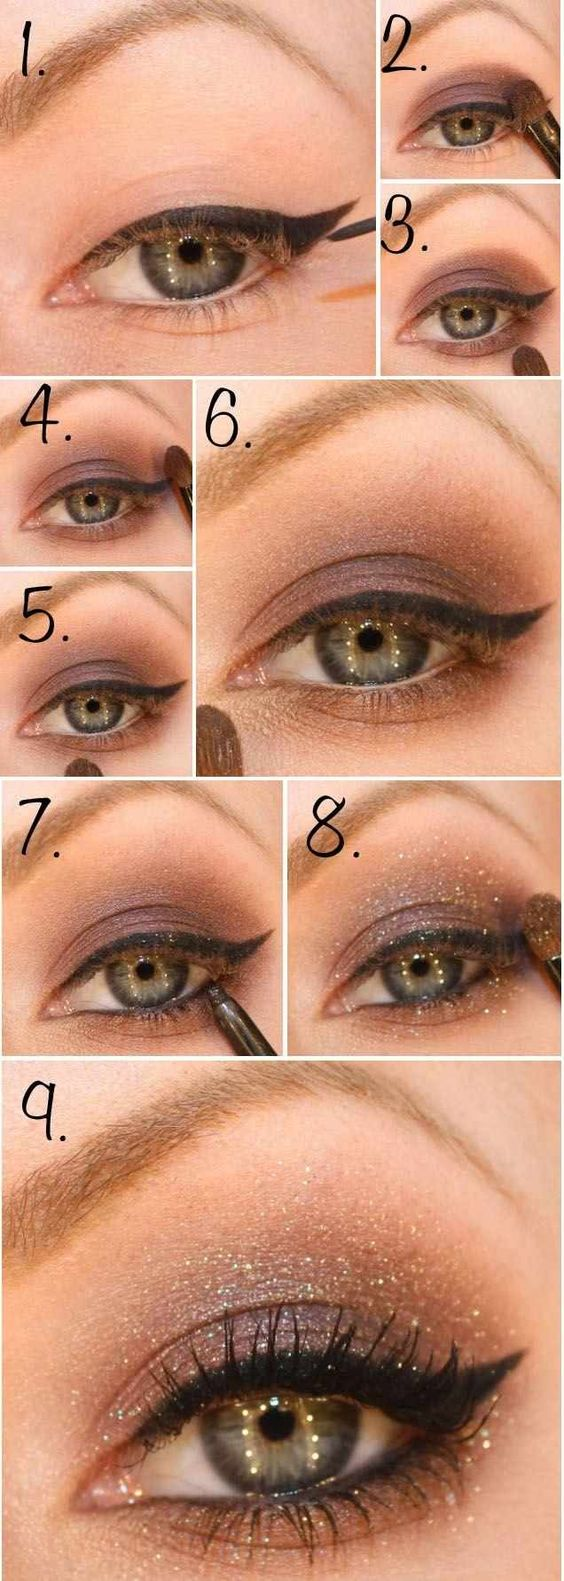 tuto maquillage yeux eye liner fard paupi res marron particules makeup pinterest photos. Black Bedroom Furniture Sets. Home Design Ideas